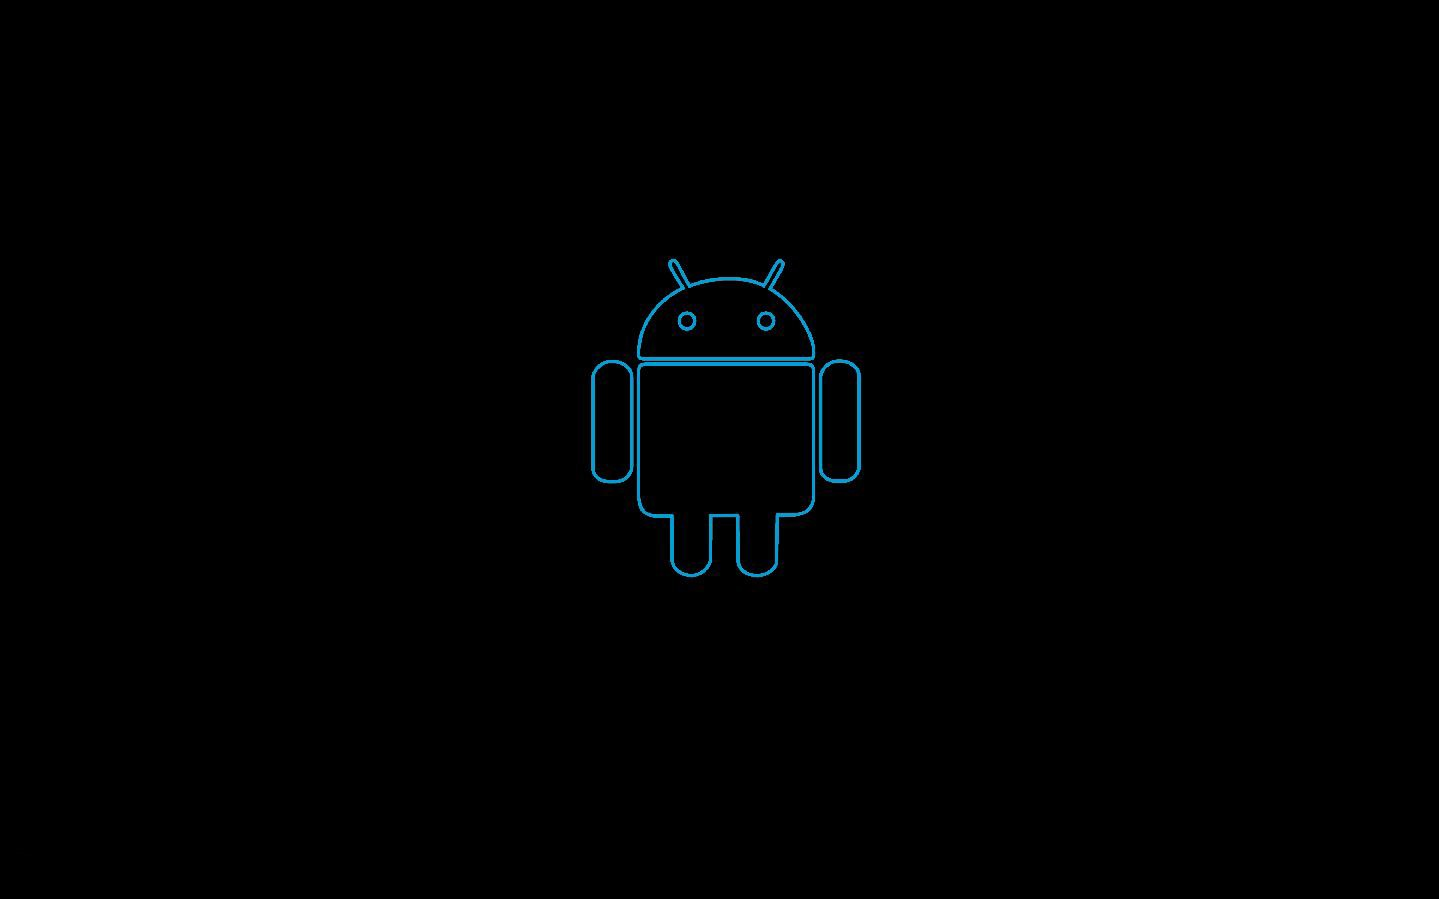 Android Black Wallpapers Download All HD Wallpapers 1439x899